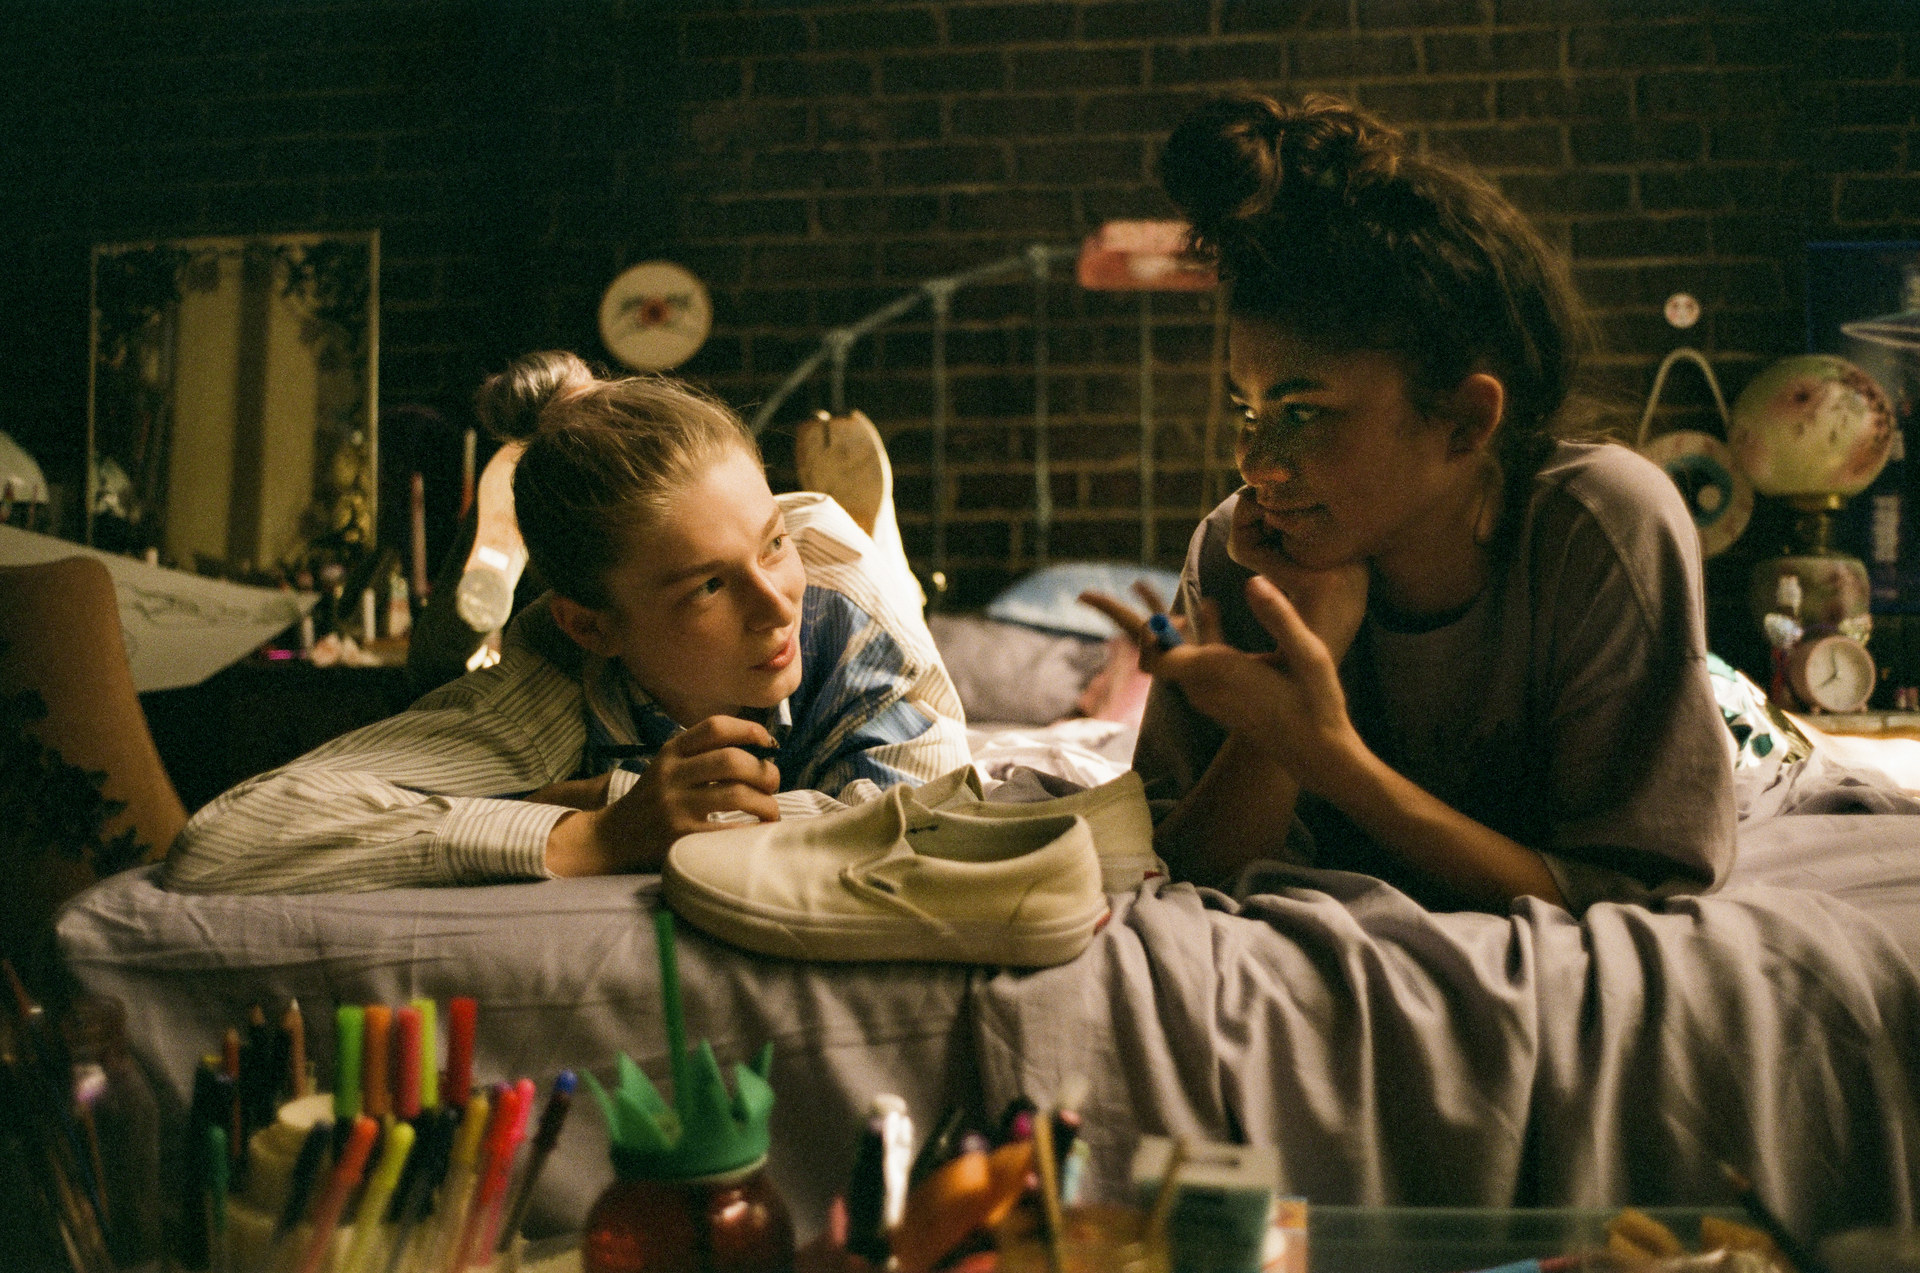 Jules and Rue talking while lying in bed